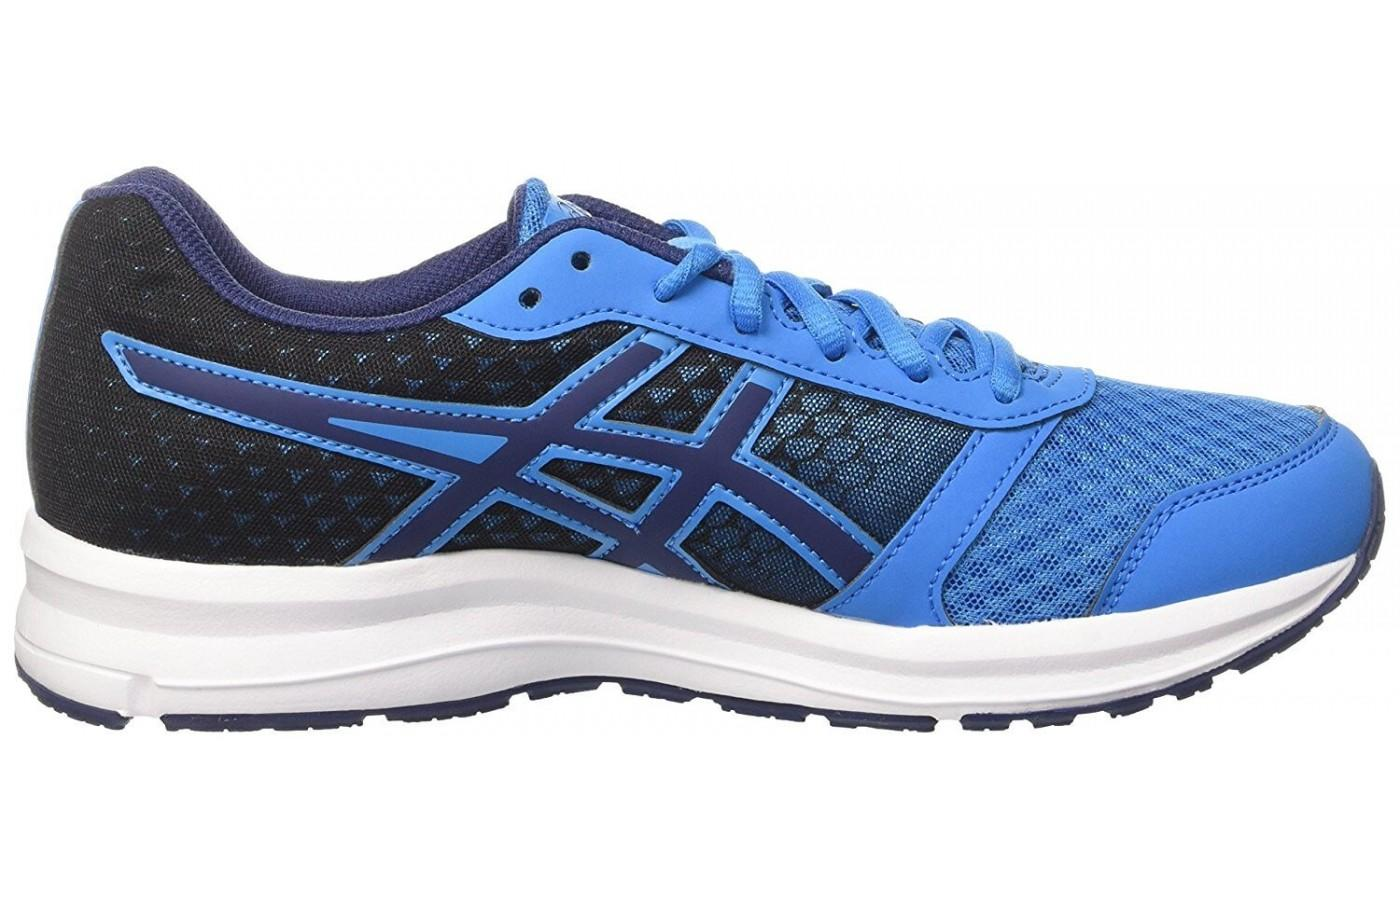 here is a profile of the ASICS Patriot 8